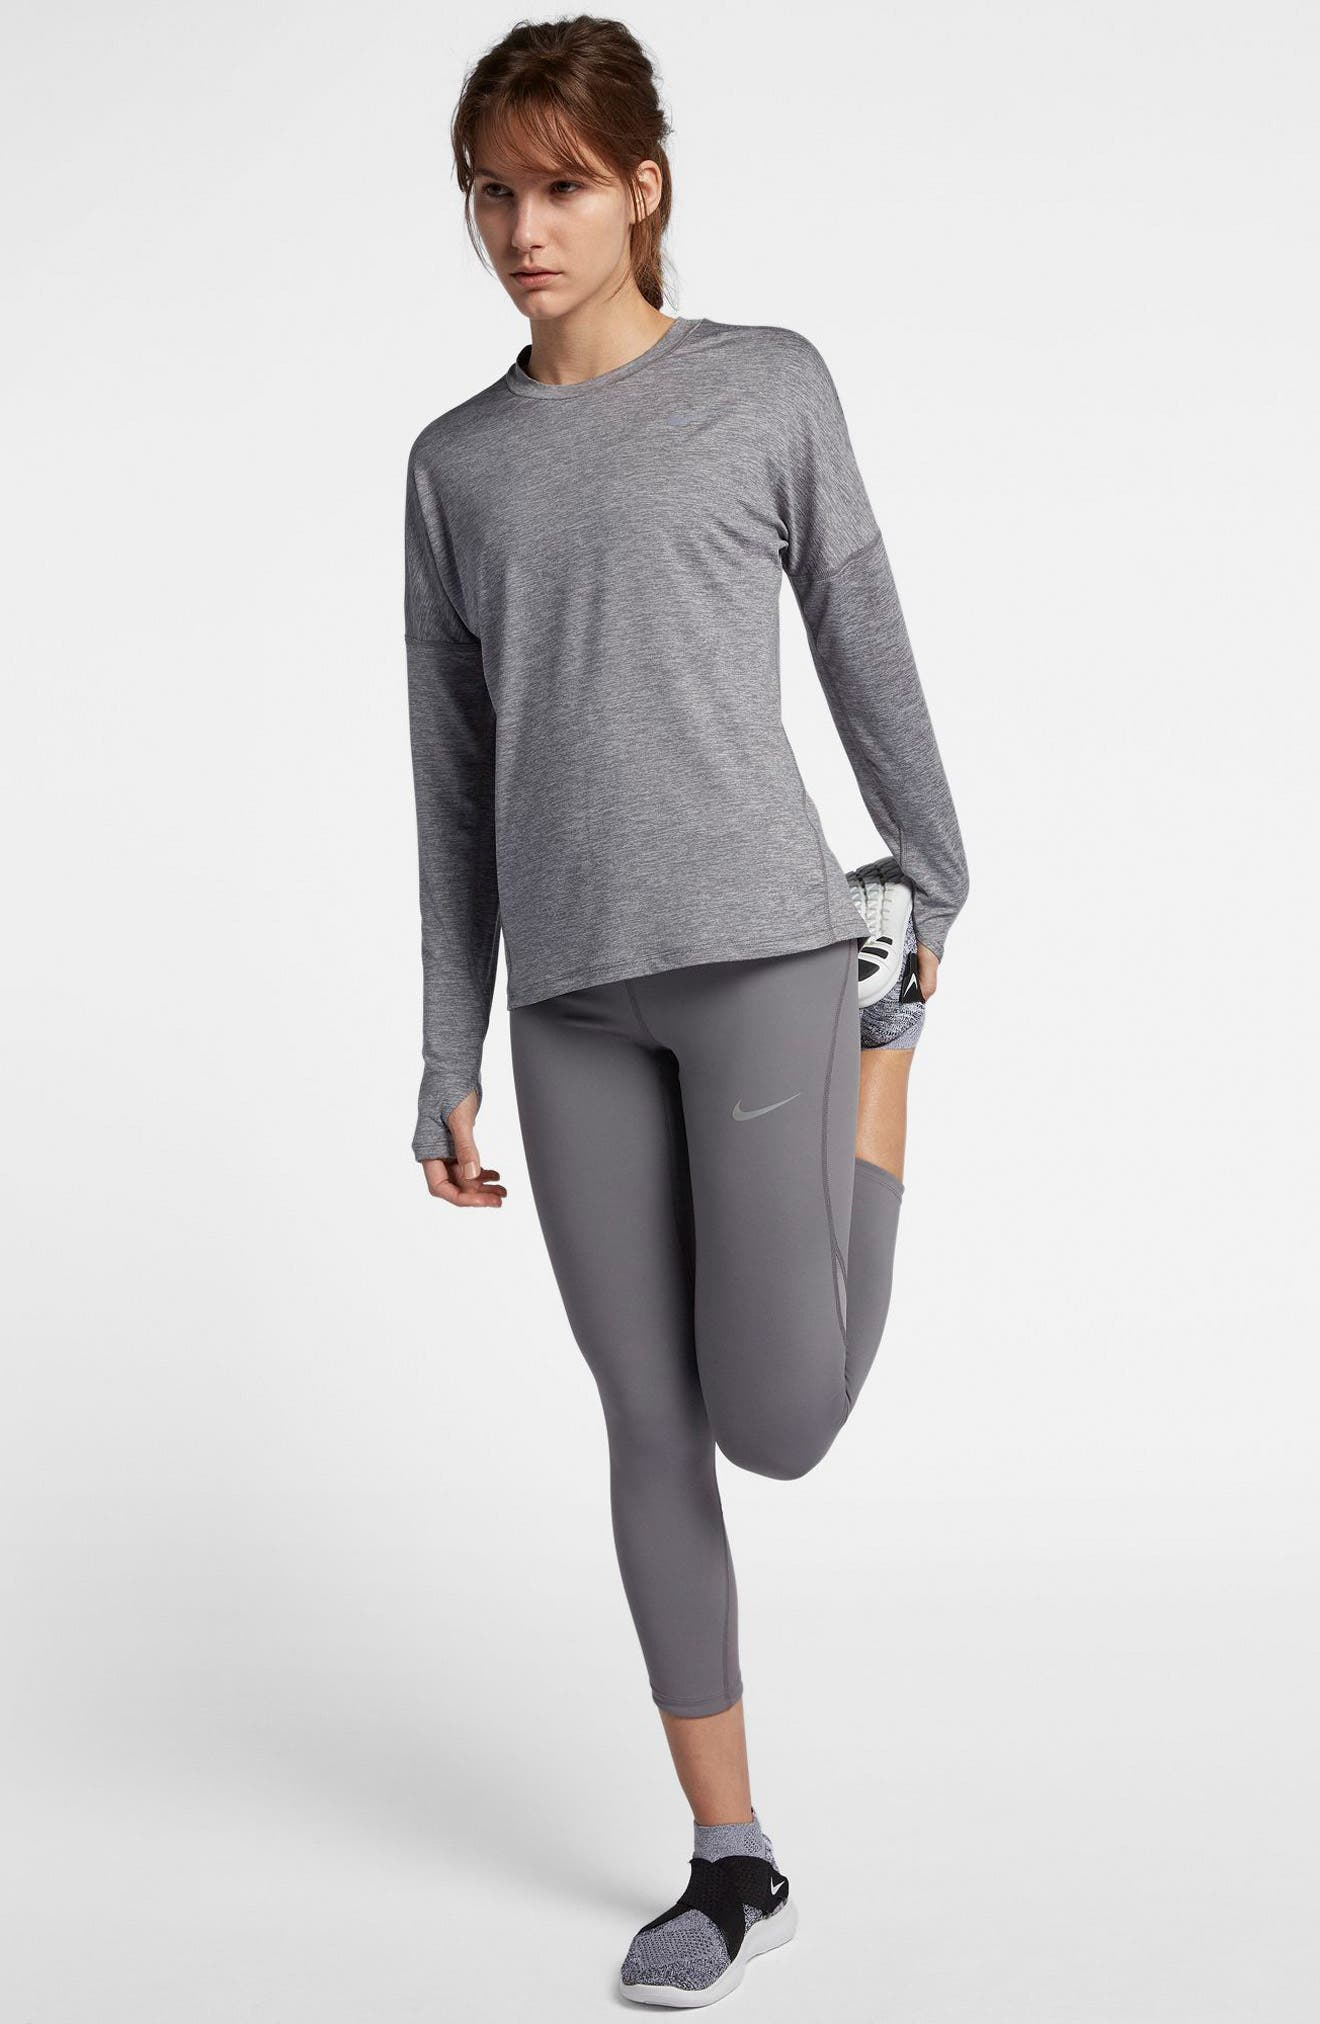 Dry Element Long Sleeve Top,                             Alternate thumbnail 23, color,